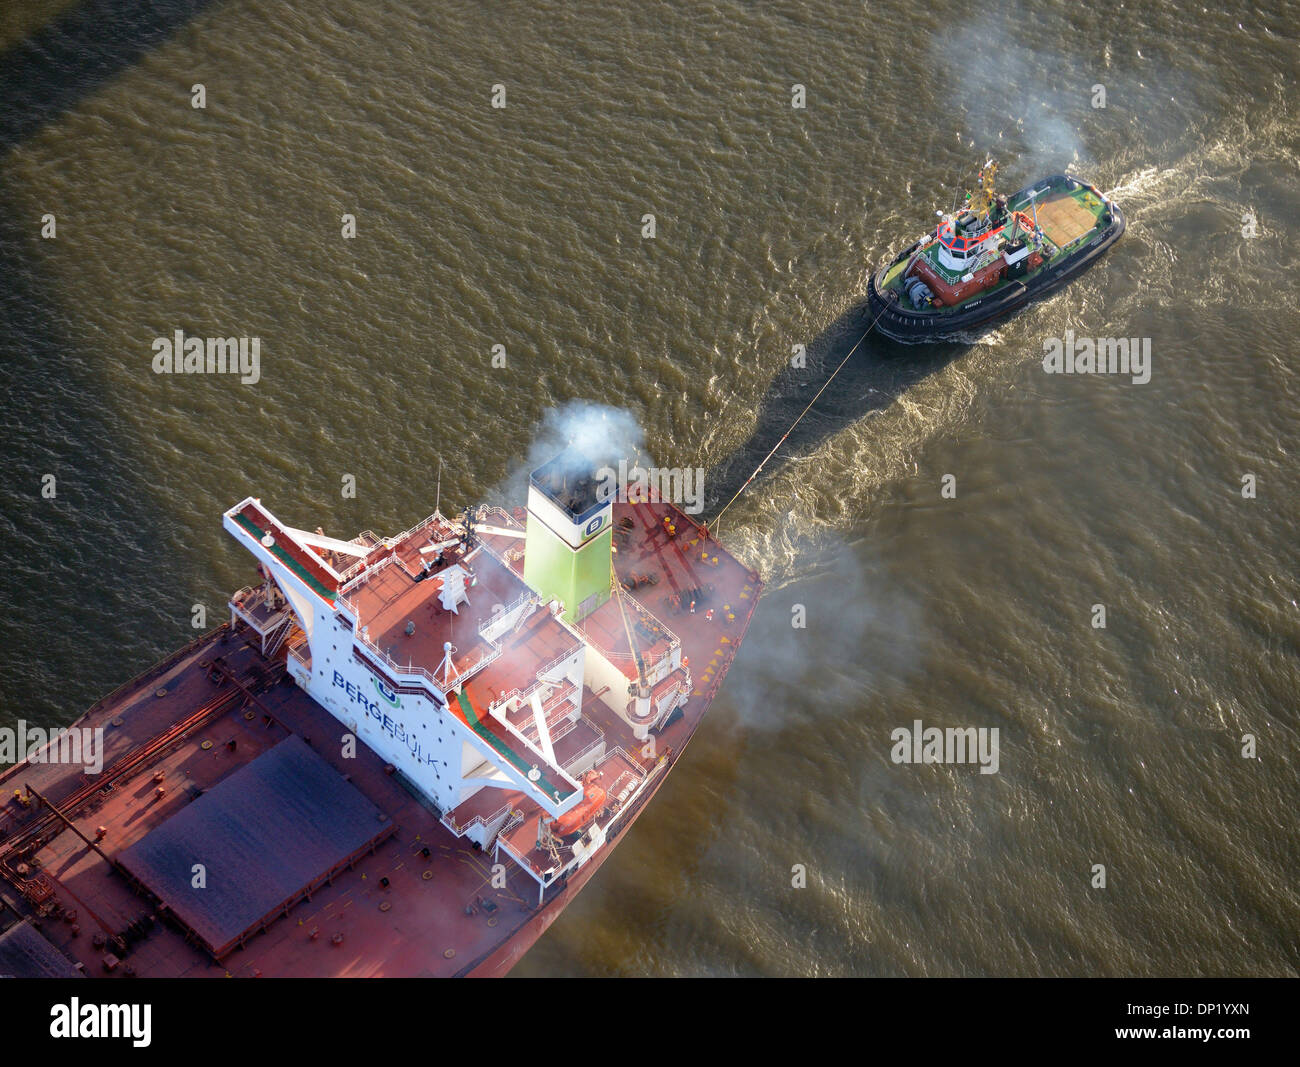 Bugsier 9 tug boat towing the Bergebulk Arctic from the harbor, Hamburg, Germany - Stock Image